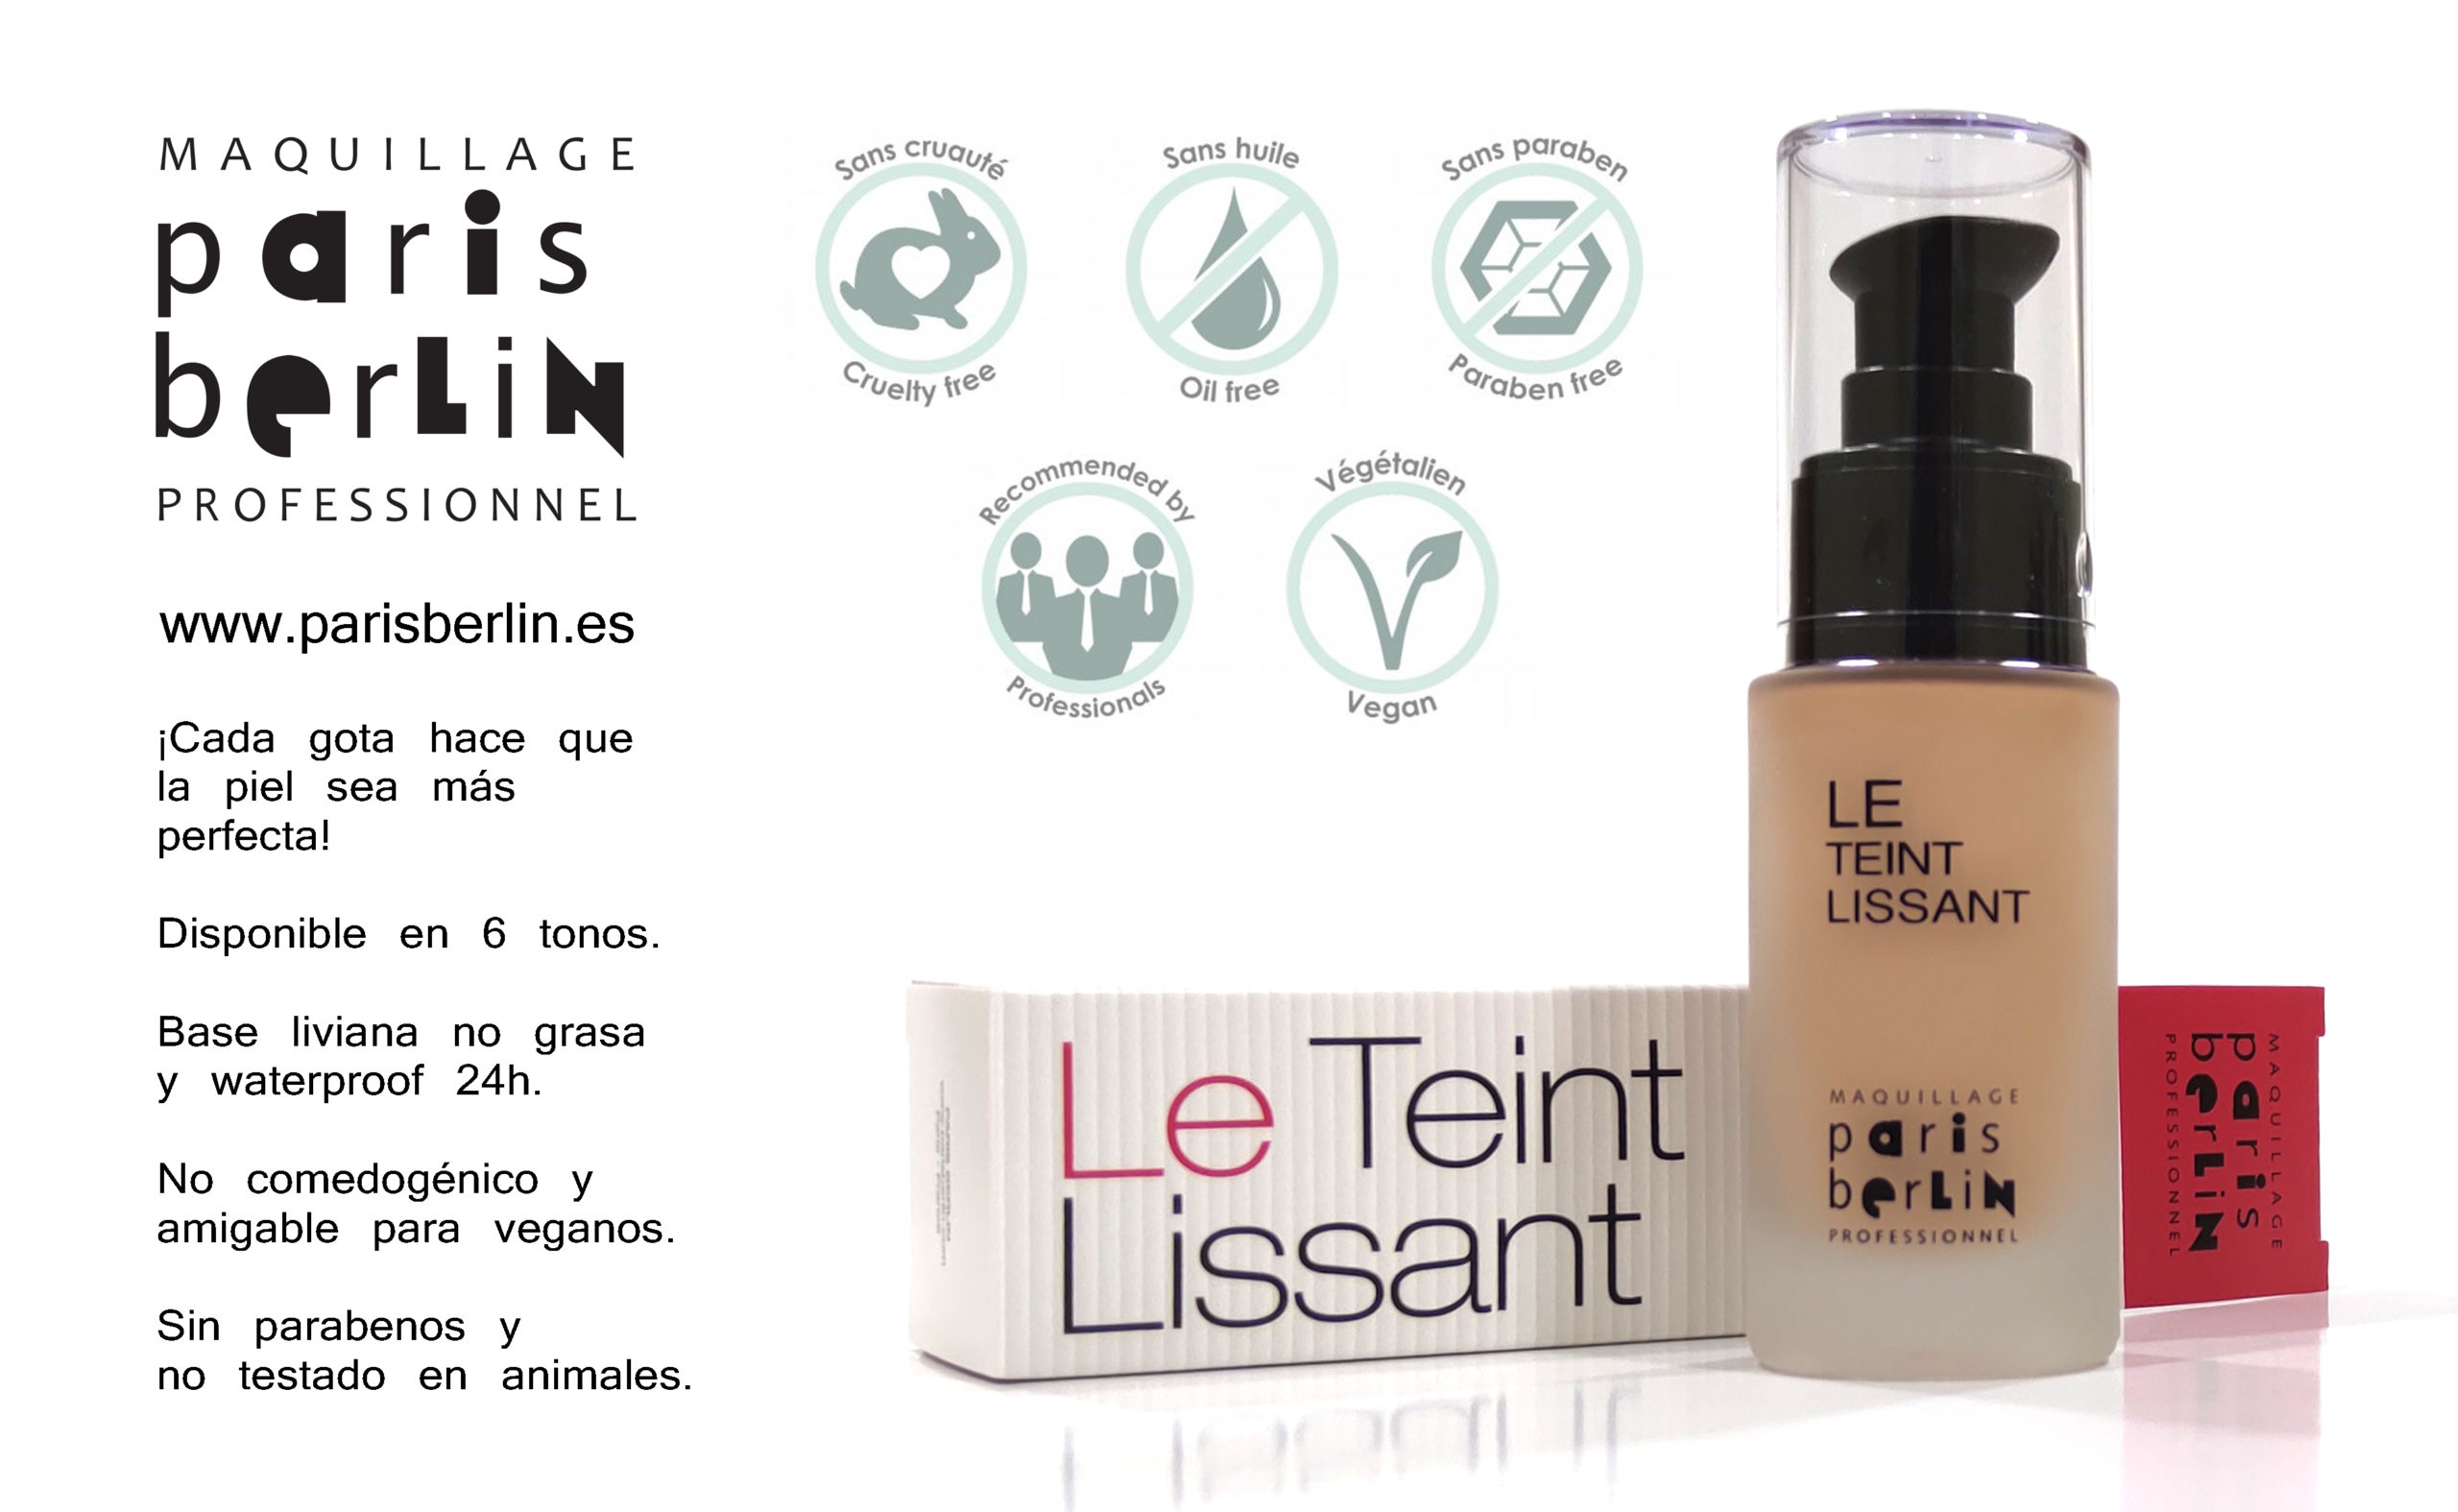 maquillaje Le teint Lissant